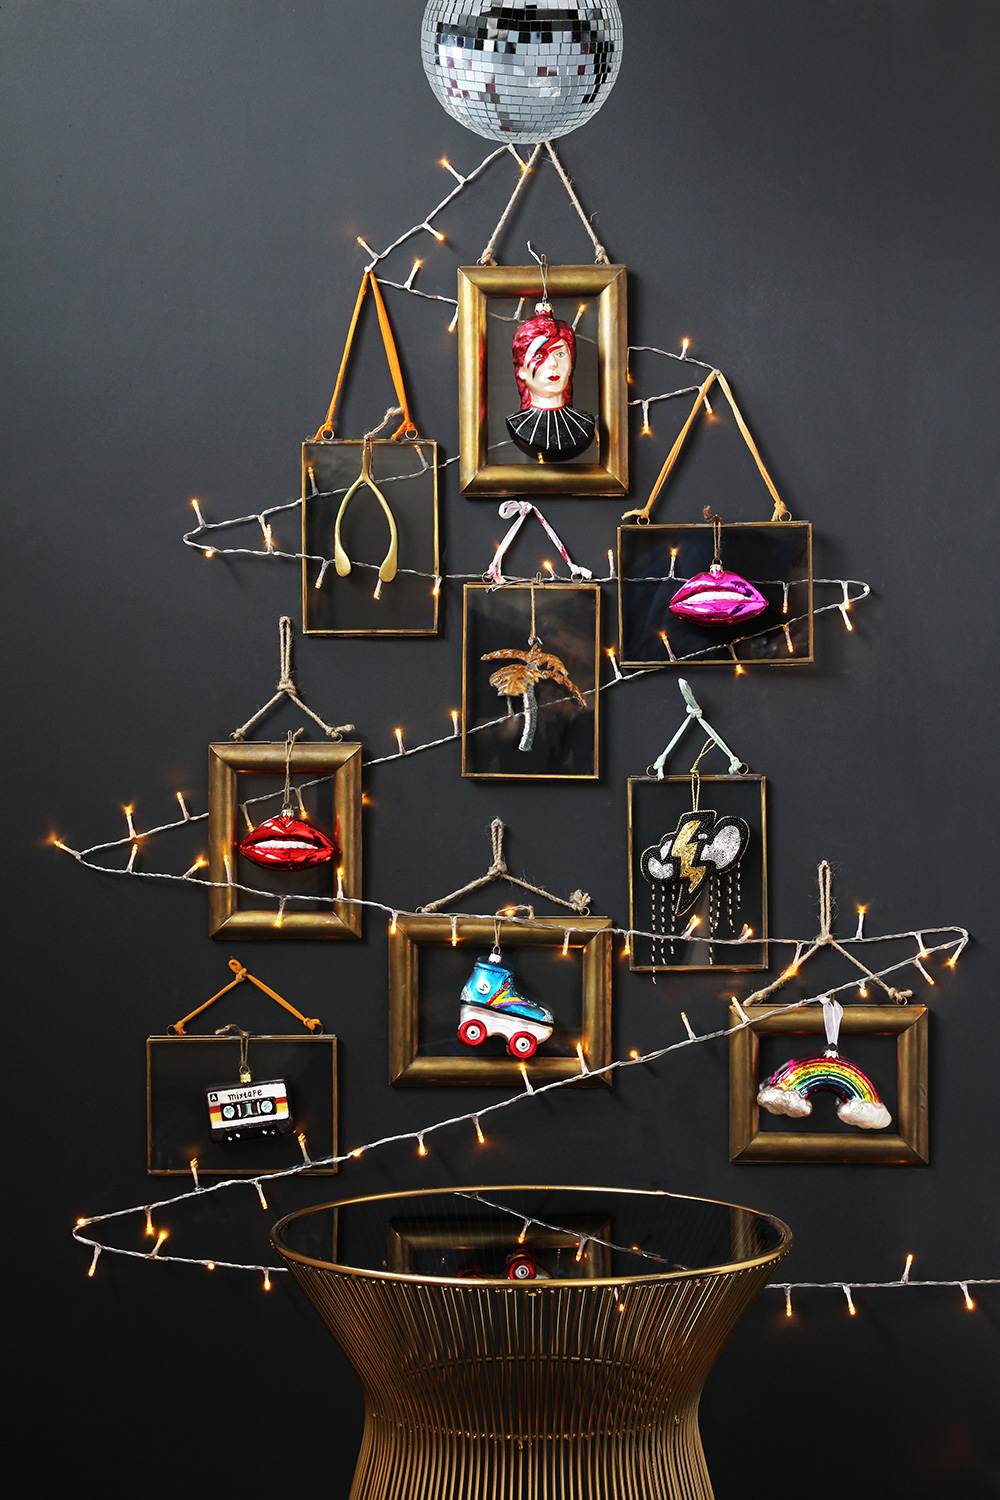 Make a statement - Big, original and quirky pieces might be the way to go for those who want to turn heads and catch eyes for their 2017 celebrations. Whether they're hanging from the tree, tucked underneath or littered around the edge, ornaments like these ones from Rockett St George will perfectly capture your tastes, personality and style. You can mix and match a variety of options to create something with a real 'wow' factor.